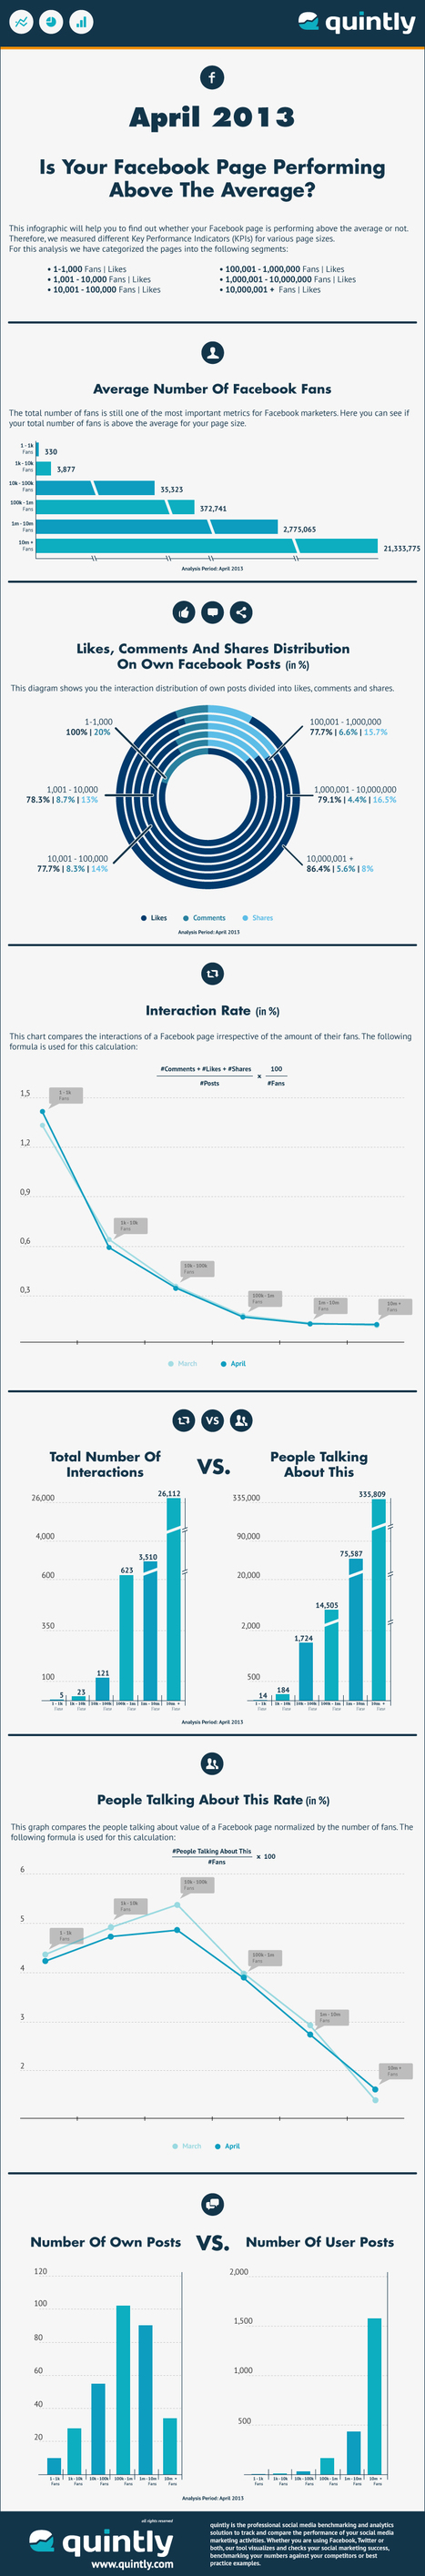 Infographic: The Average Facebook Page Performance For April 2013 - Quintly | Online Marketing | Scoop.it